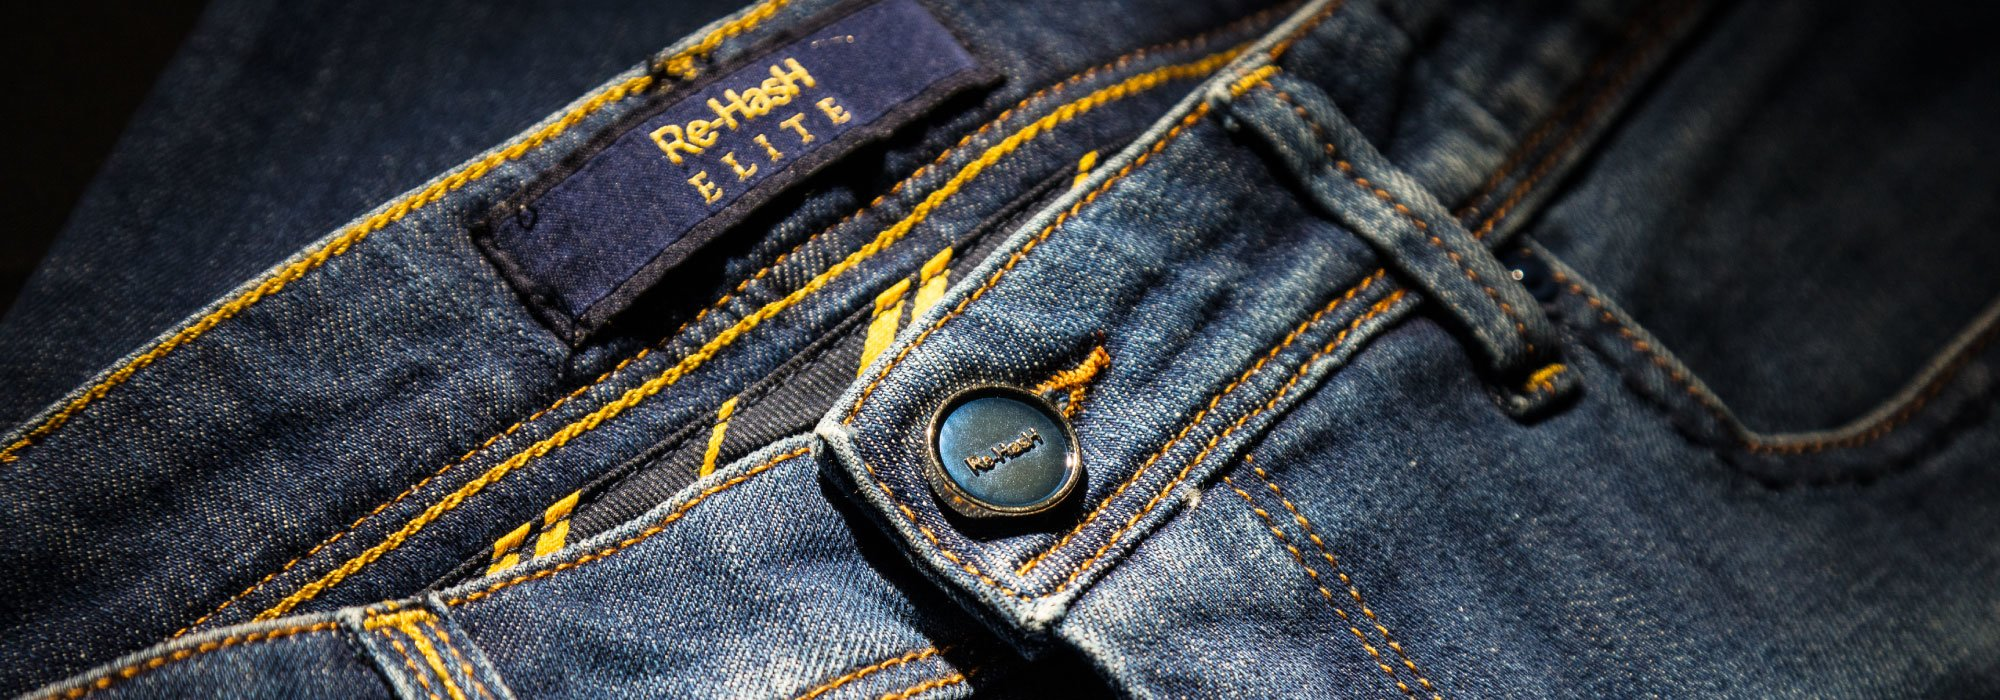 ELITE - Exclusive capsule realized to the finest Denim fabrics.